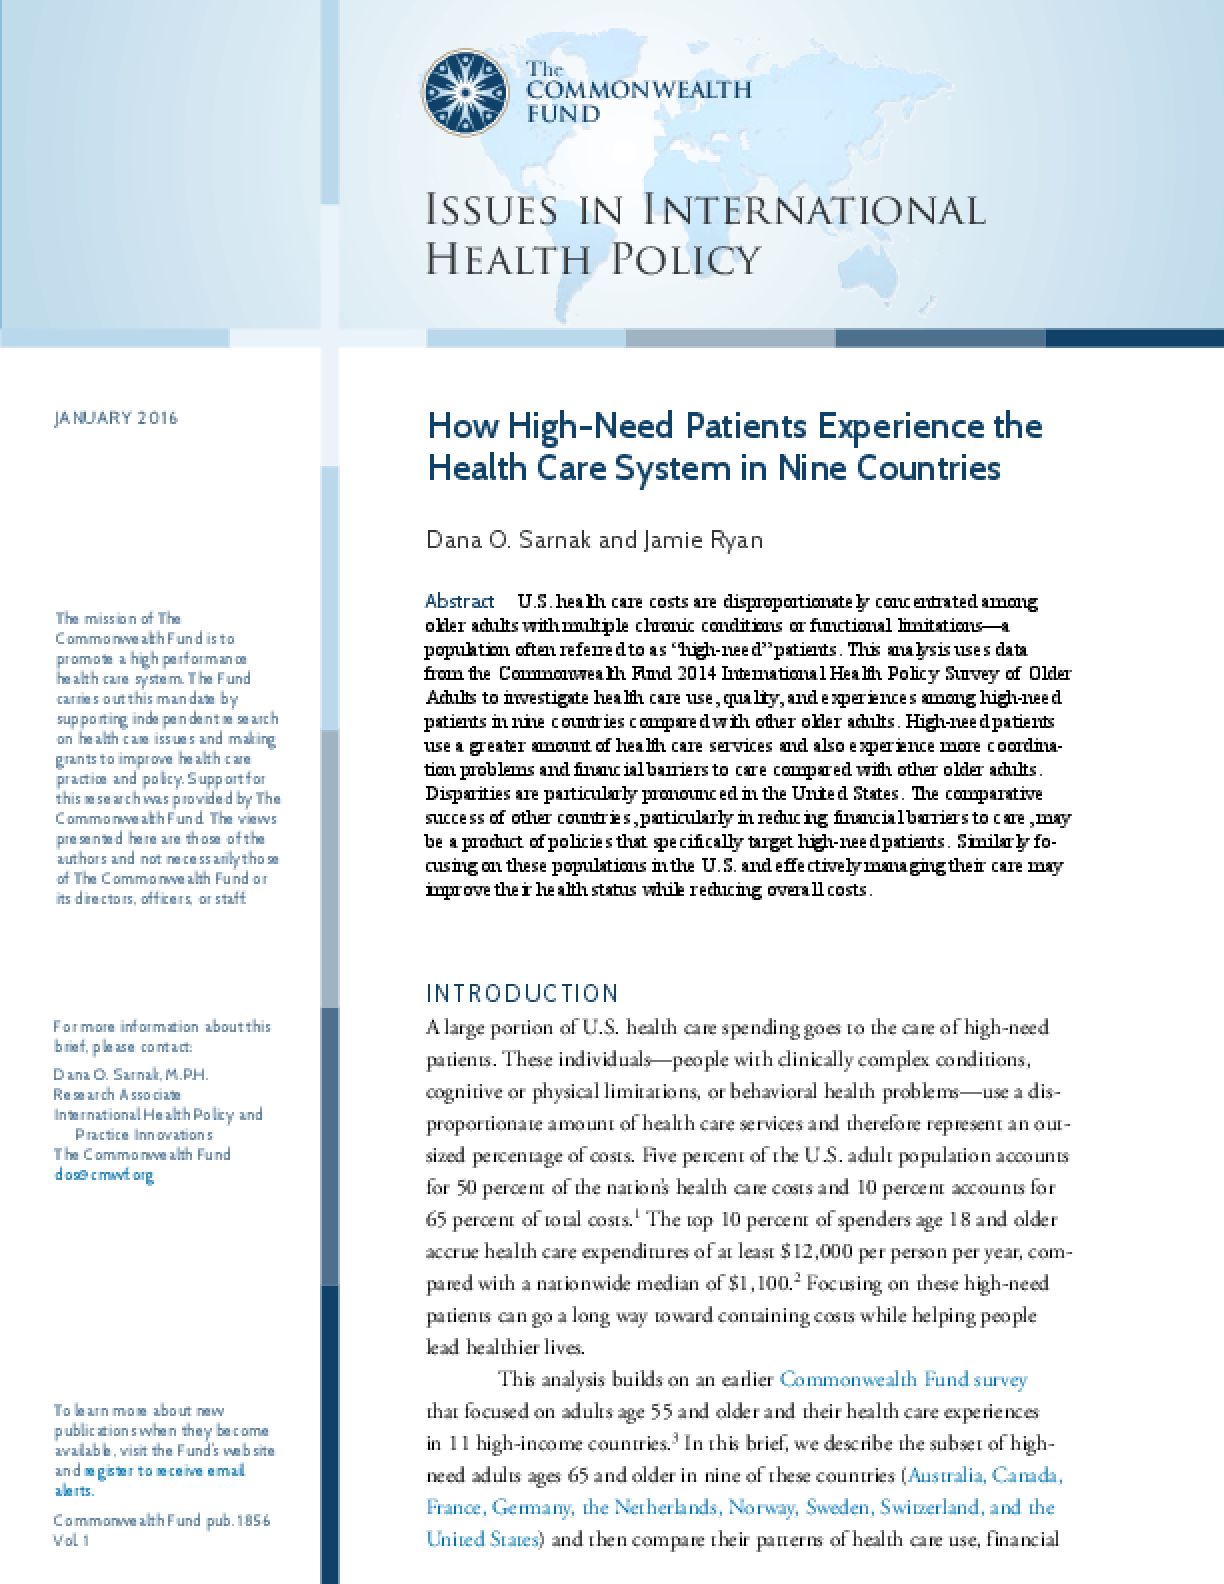 How High-Need Patients Experience the Health Care System in Nine Countries